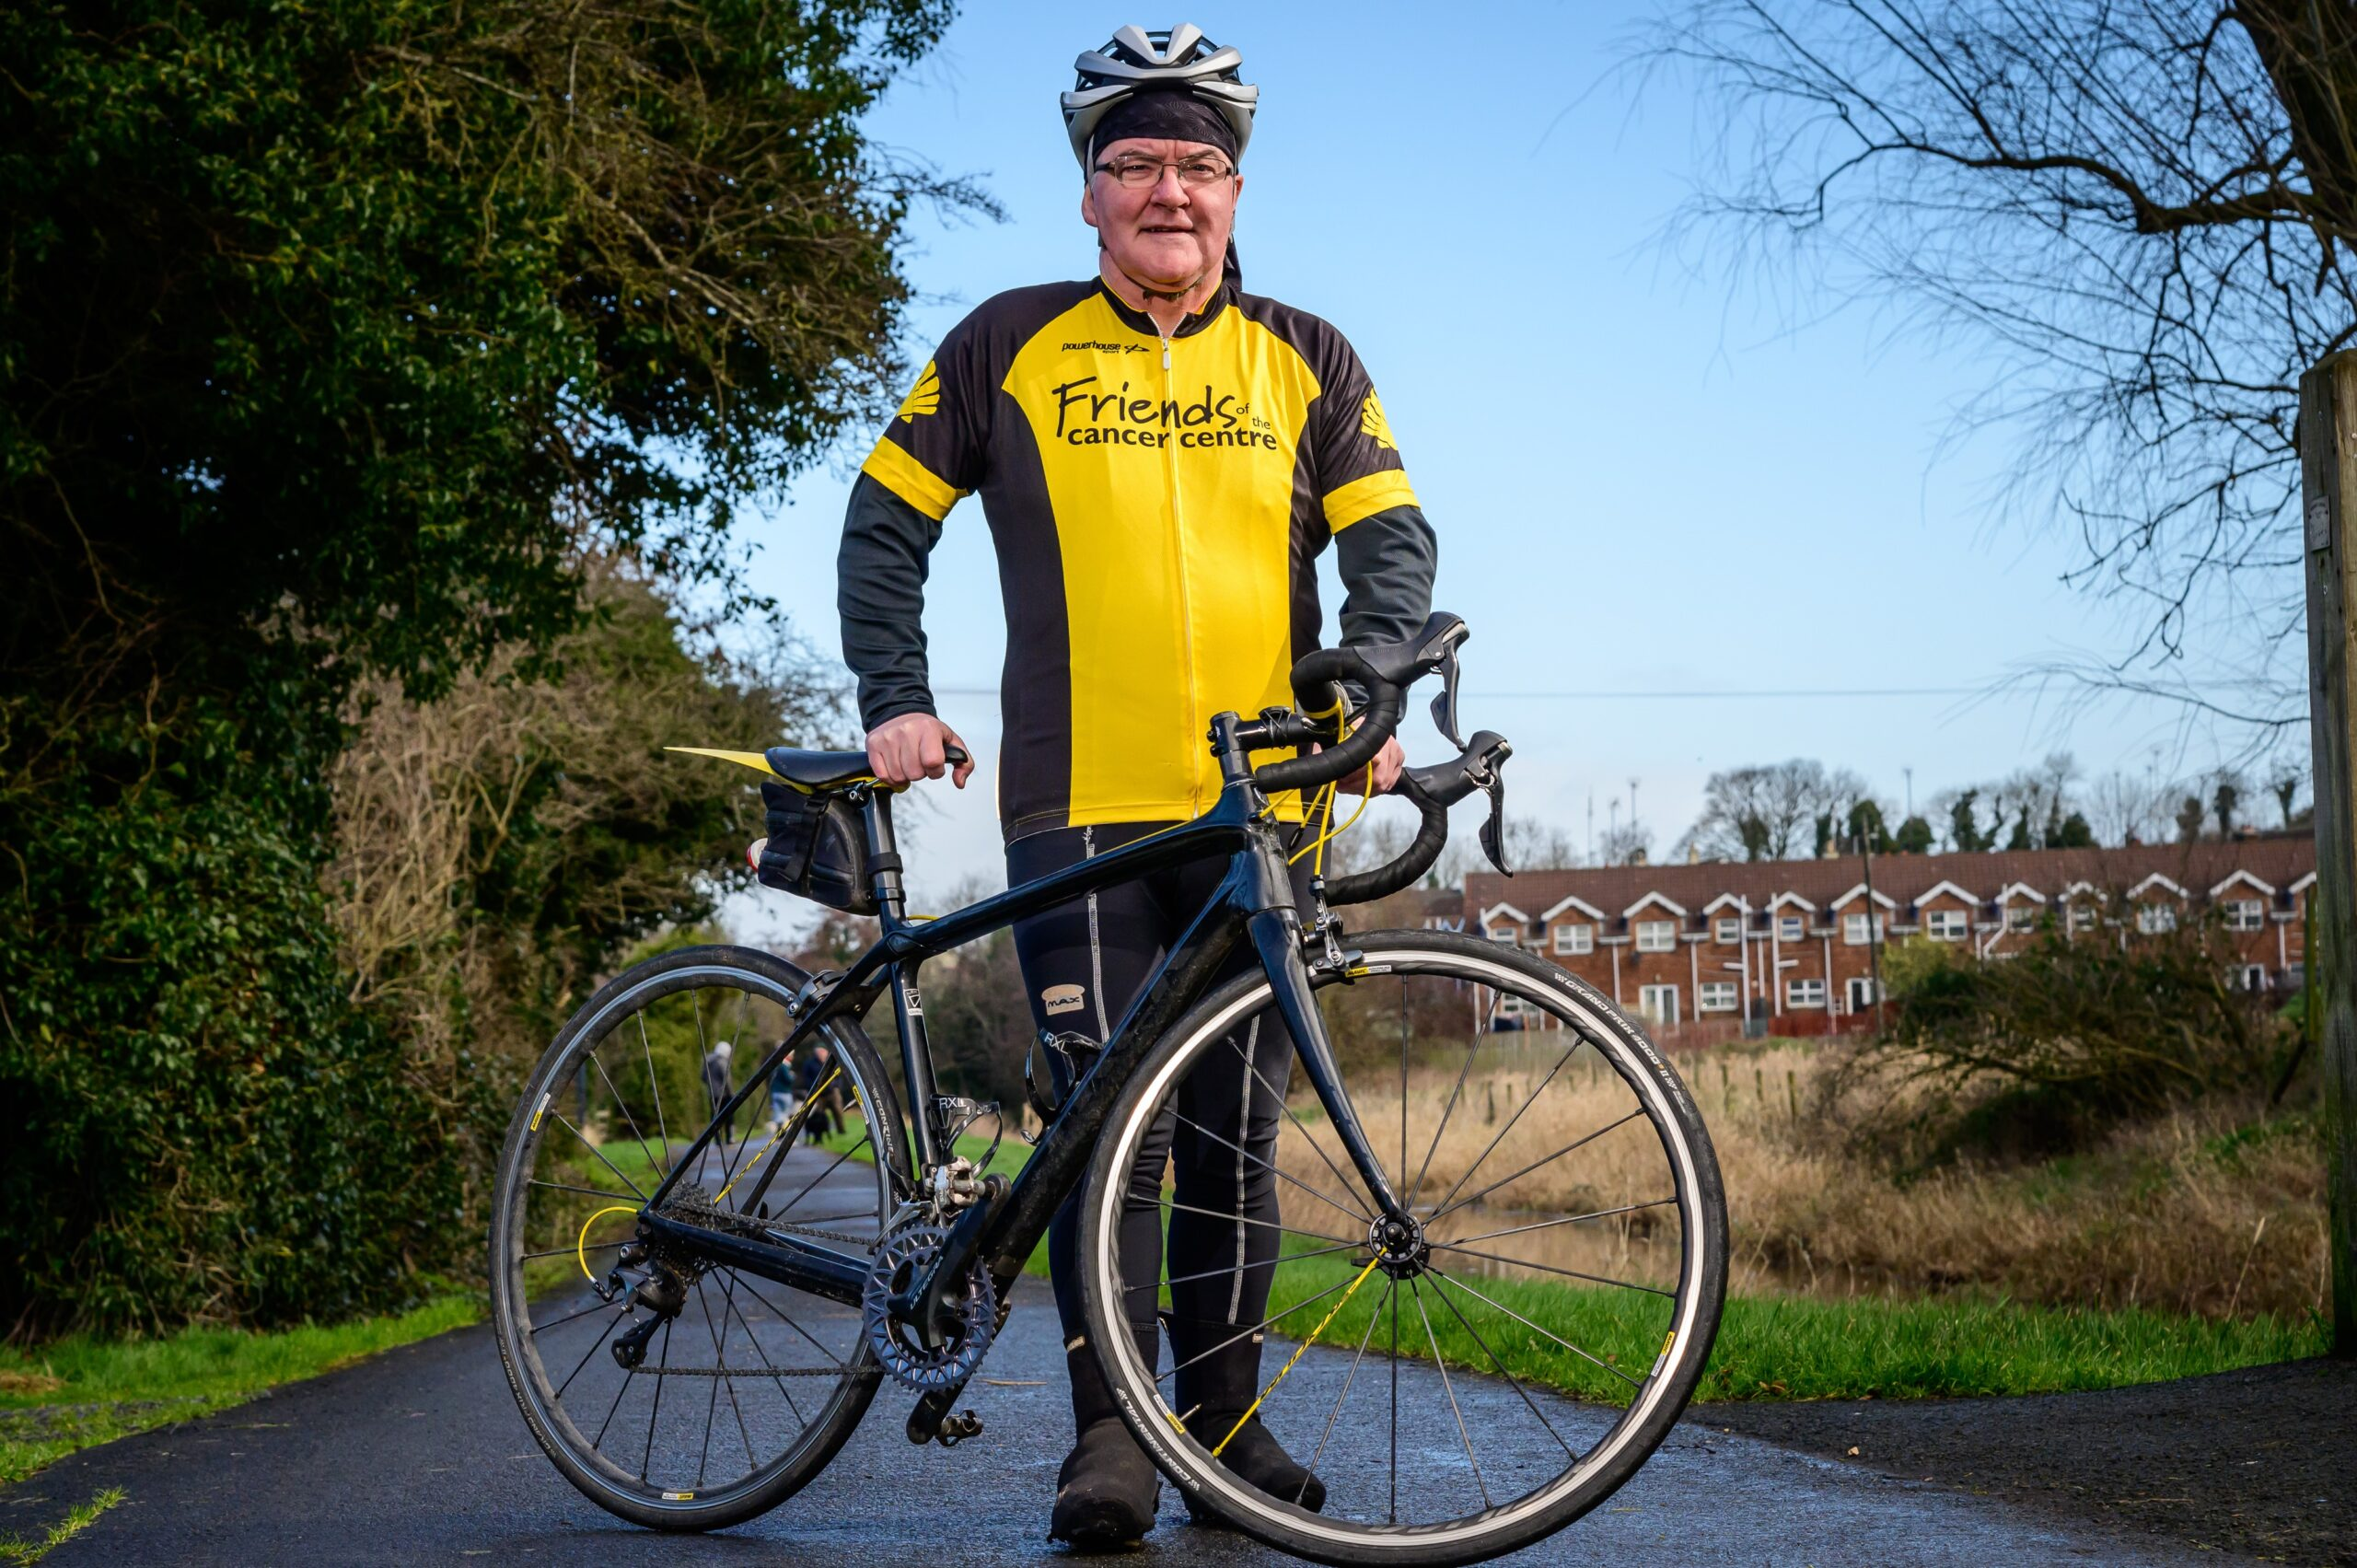 Dr McAleer calls on people to get on their bike for Friends of the Cancer Centre | Newry Times - breaking news newry